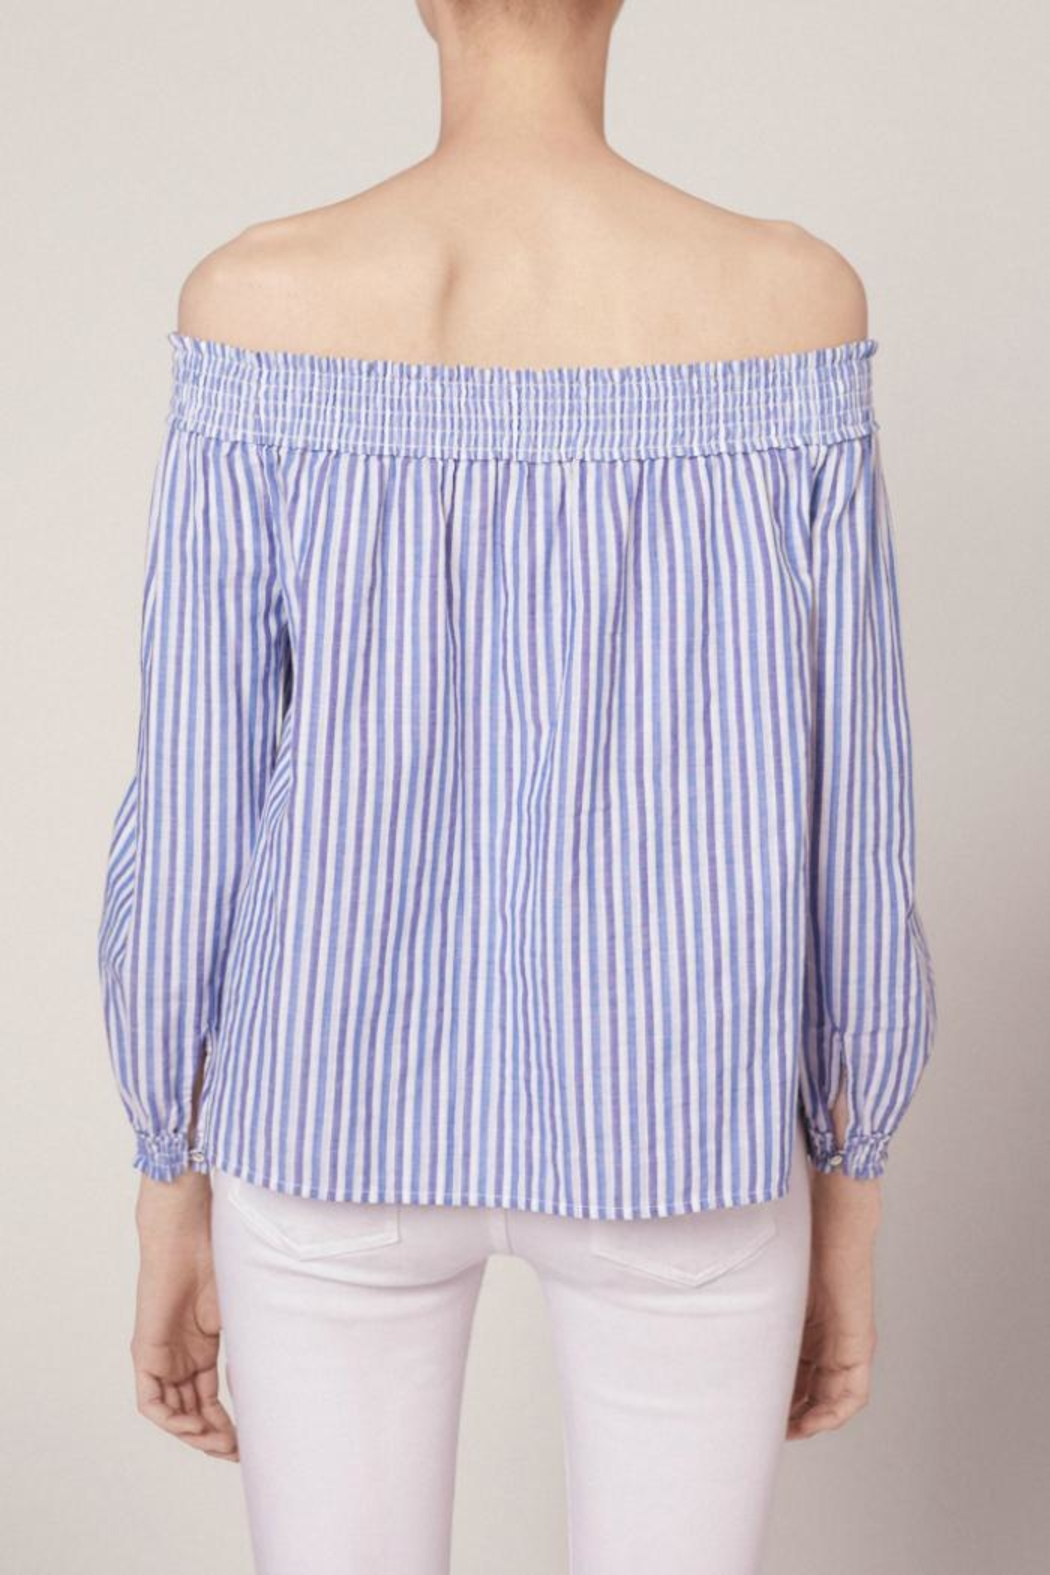 Rag & Bone Stripe Drew Top - Front Full Image